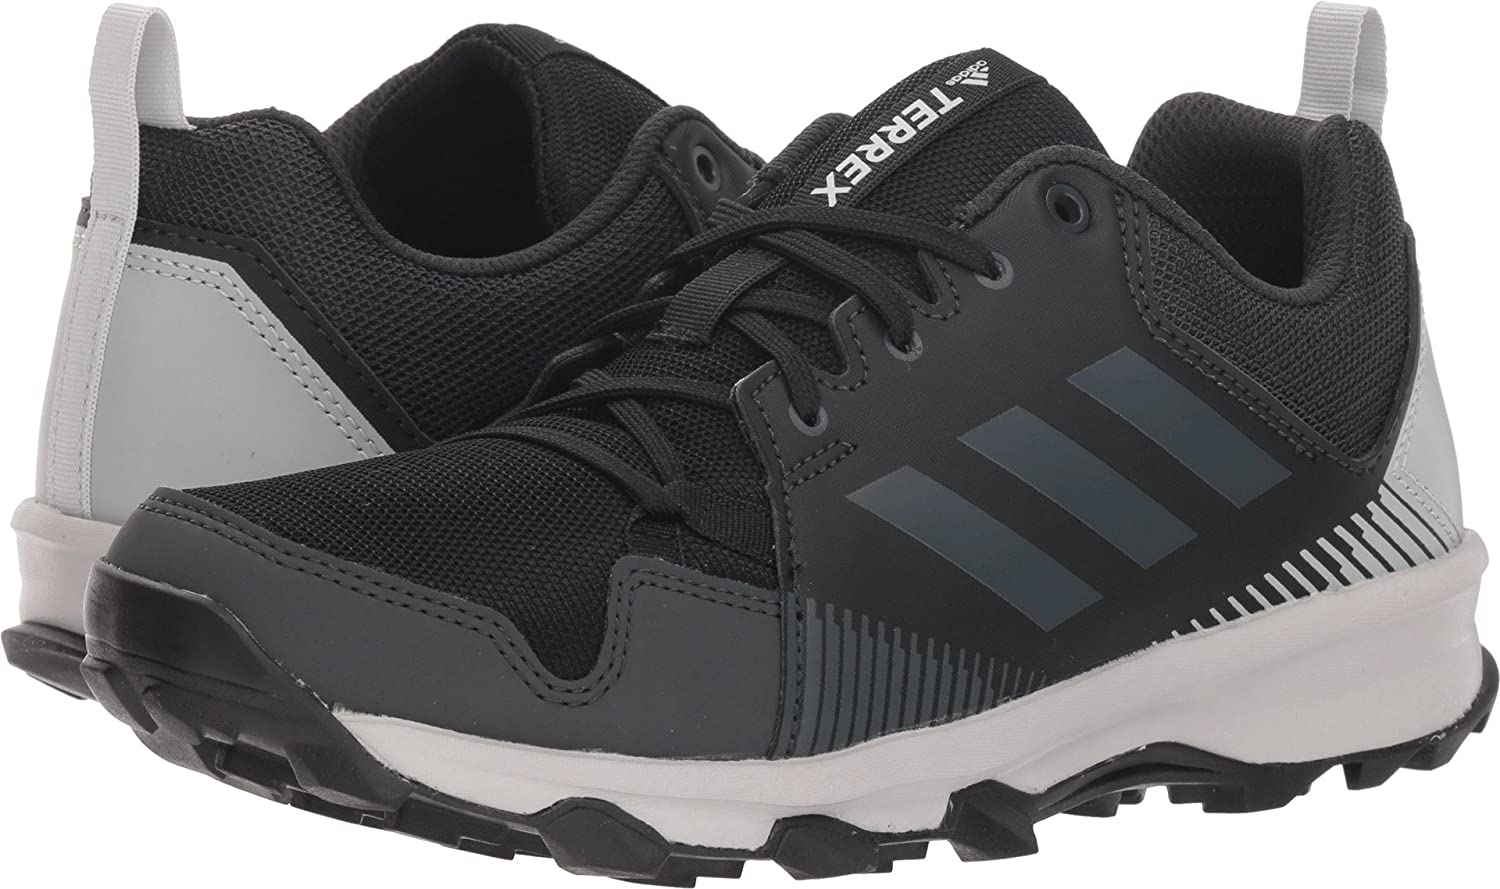 adidas outdoor Women's Terrex Tracerocker W Trail Running Shoe B078WGH9X8 9 B(M) US|Black/Carbon/Ash Green